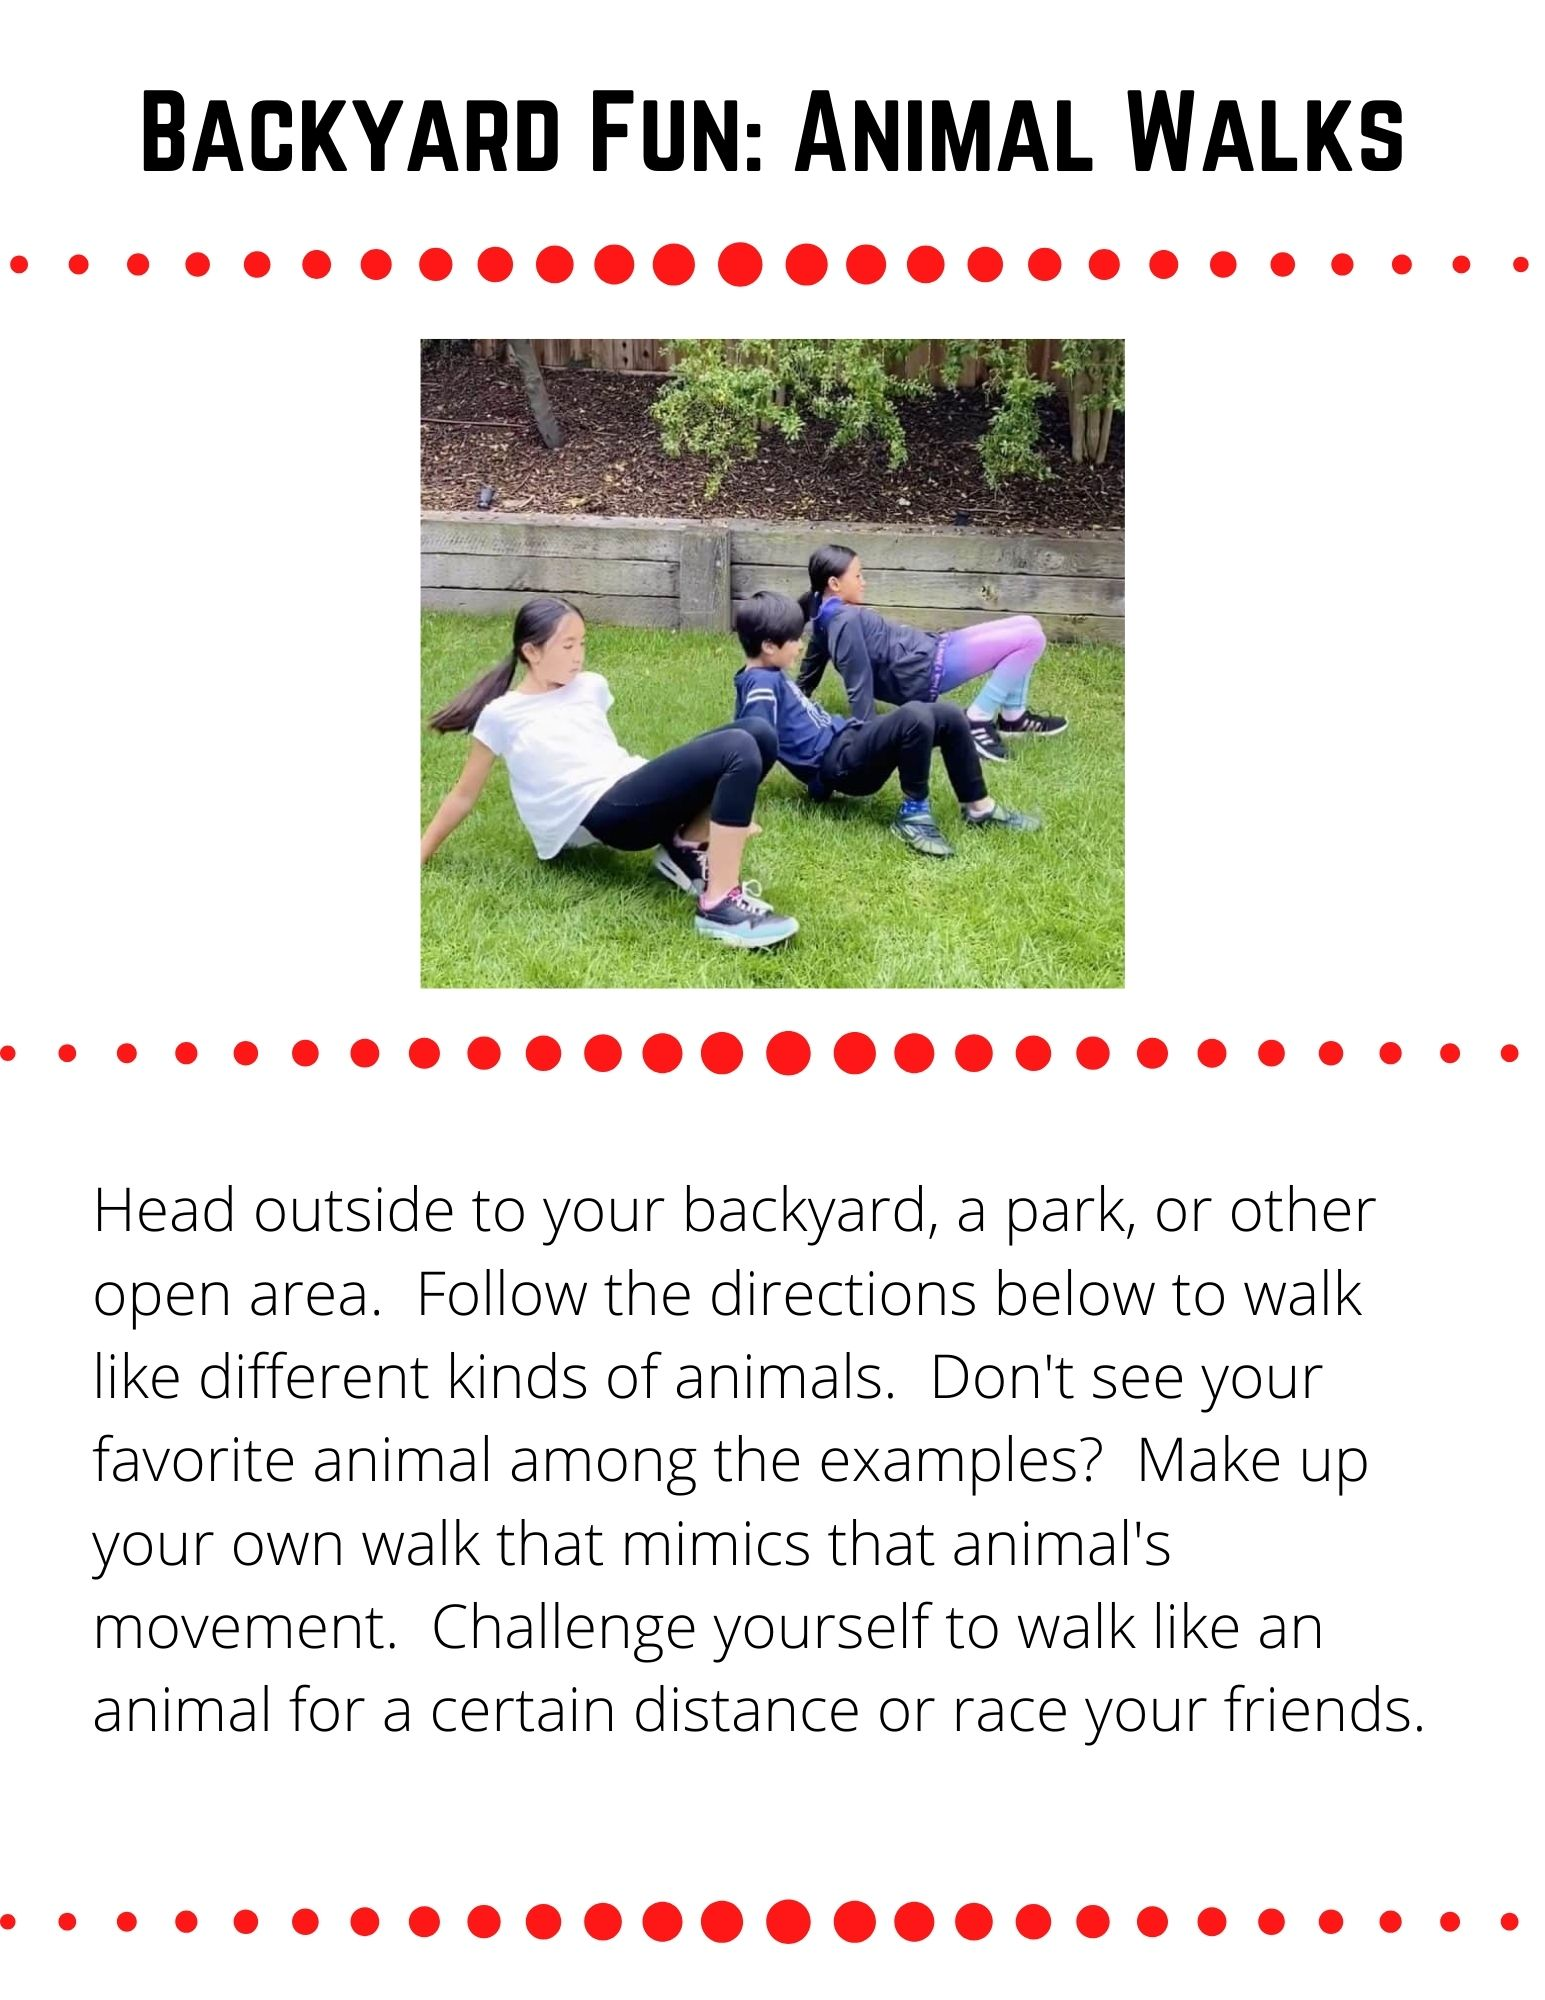 Backyard Fun: Animal Walks. Head outside to your backyard, a park, or other open area.  Make up your own walk that mimics an animal's movement.  Challenge yourself to walk like an animal for a certain distance or race your friends.